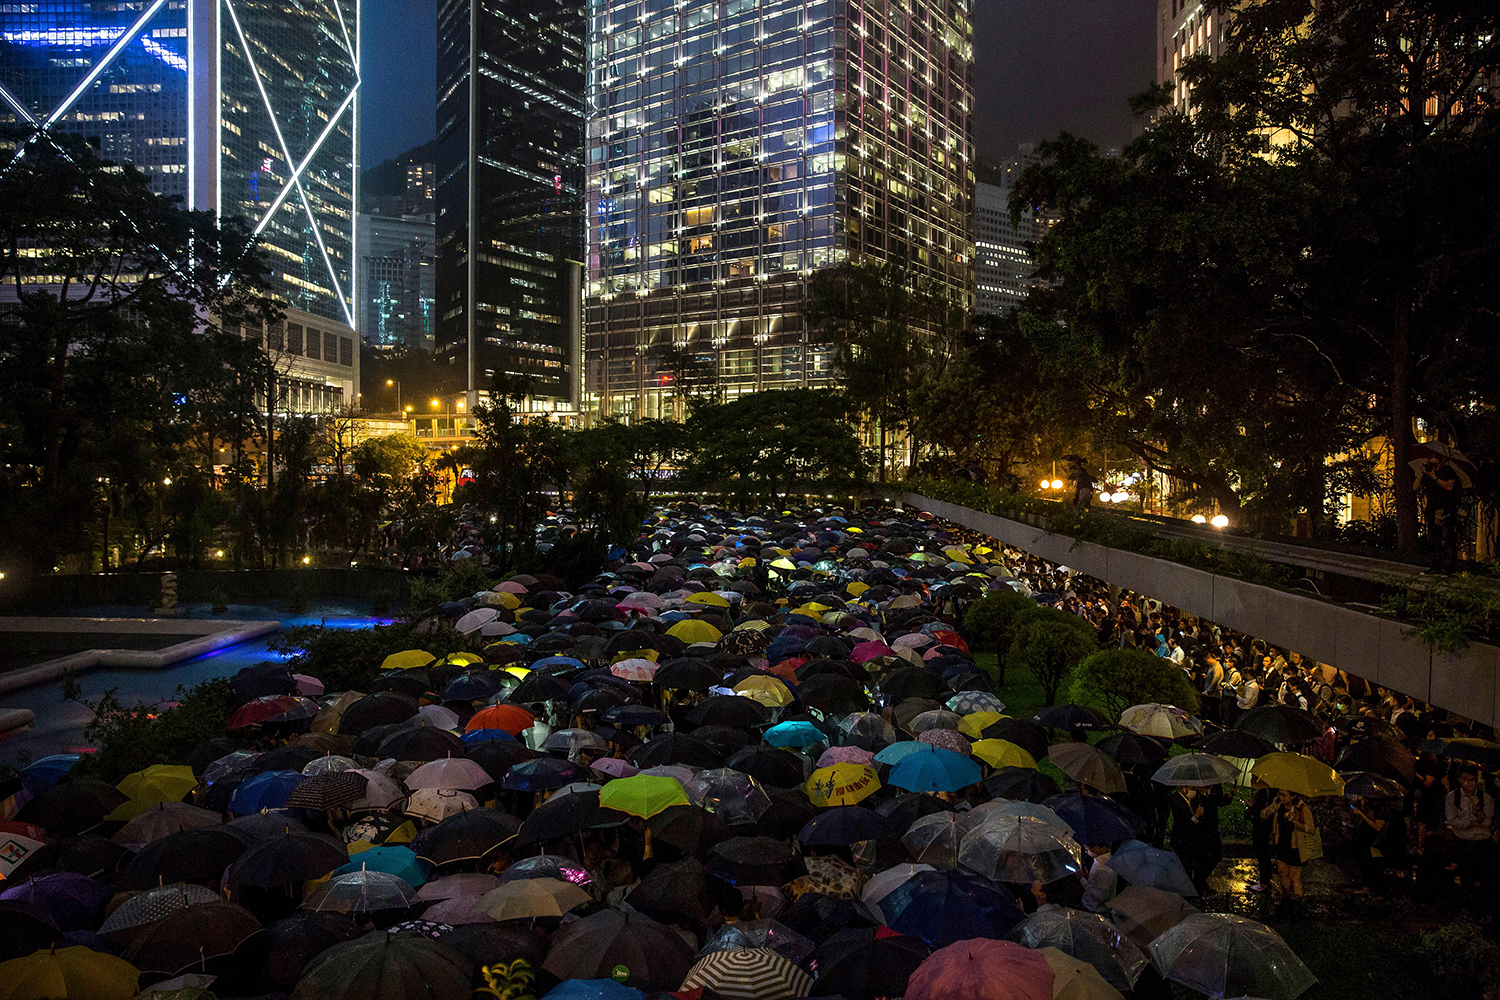 People from the finance community hold umbrellas and shine lights during a protest against a controversial extradition bill in Hong Kong on Aug. 1. ISAAC LAWRENCE/AFP/Getty Images